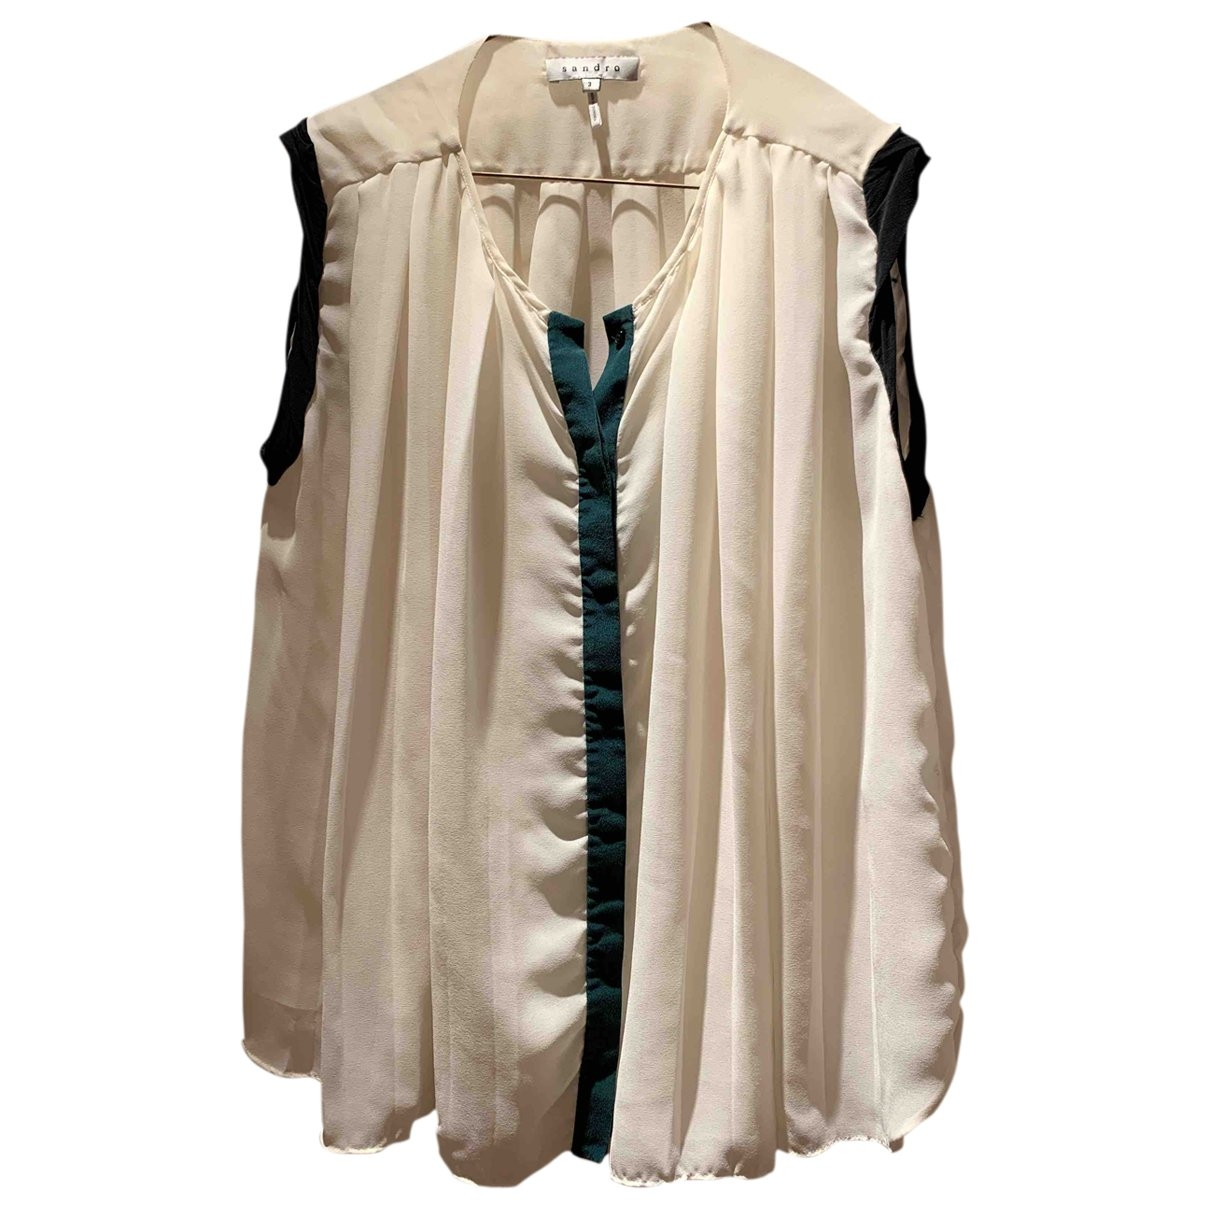 Sandro \N Beige  top for Women 3 0-5